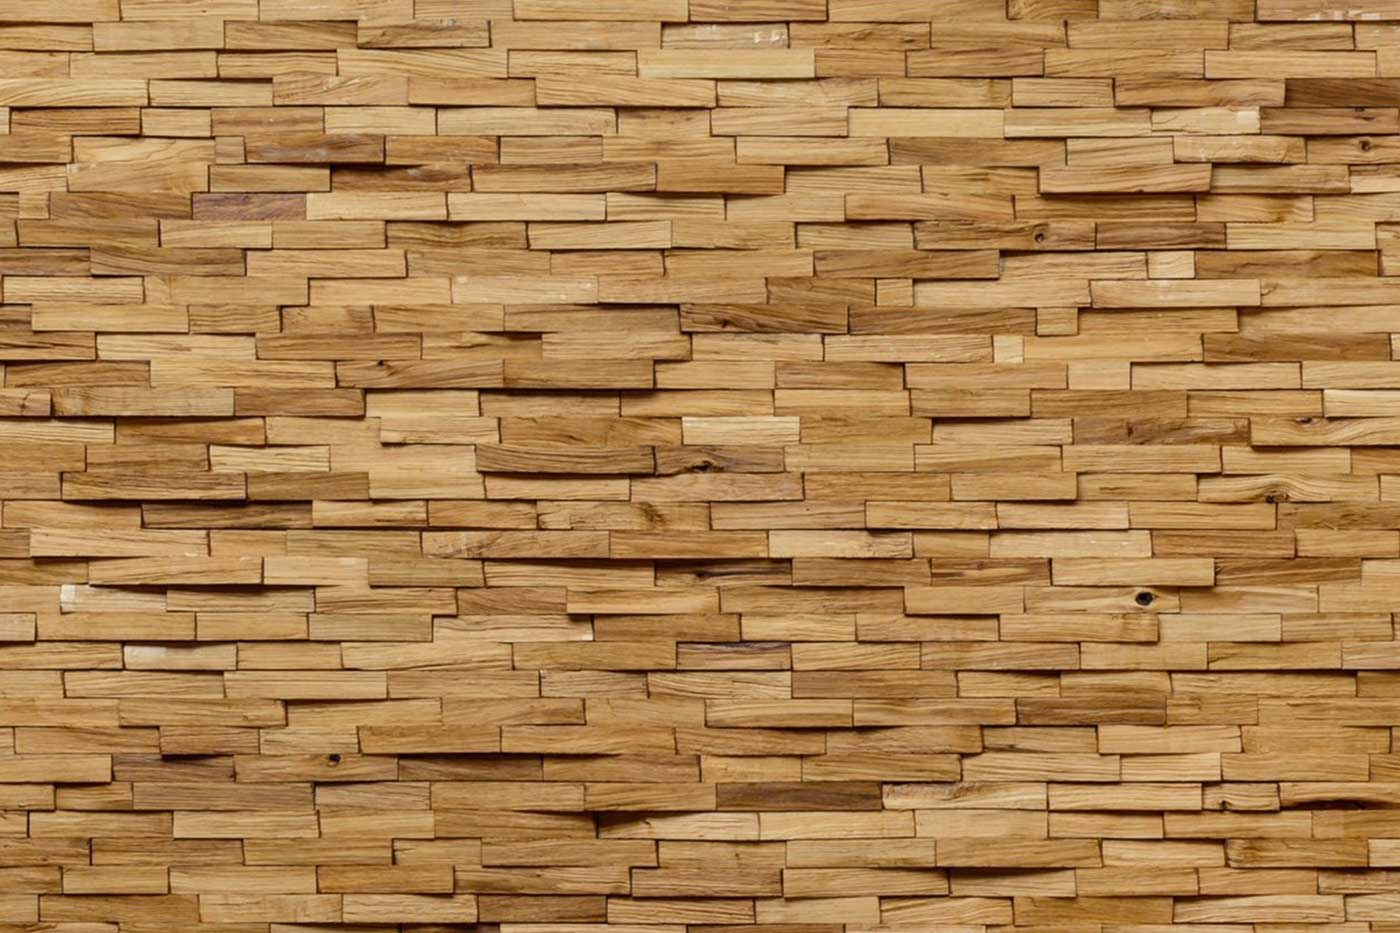 European Oak 3D Wall Panelling Plank Size 600mm Long x 141mm Wide Sold Per Piece